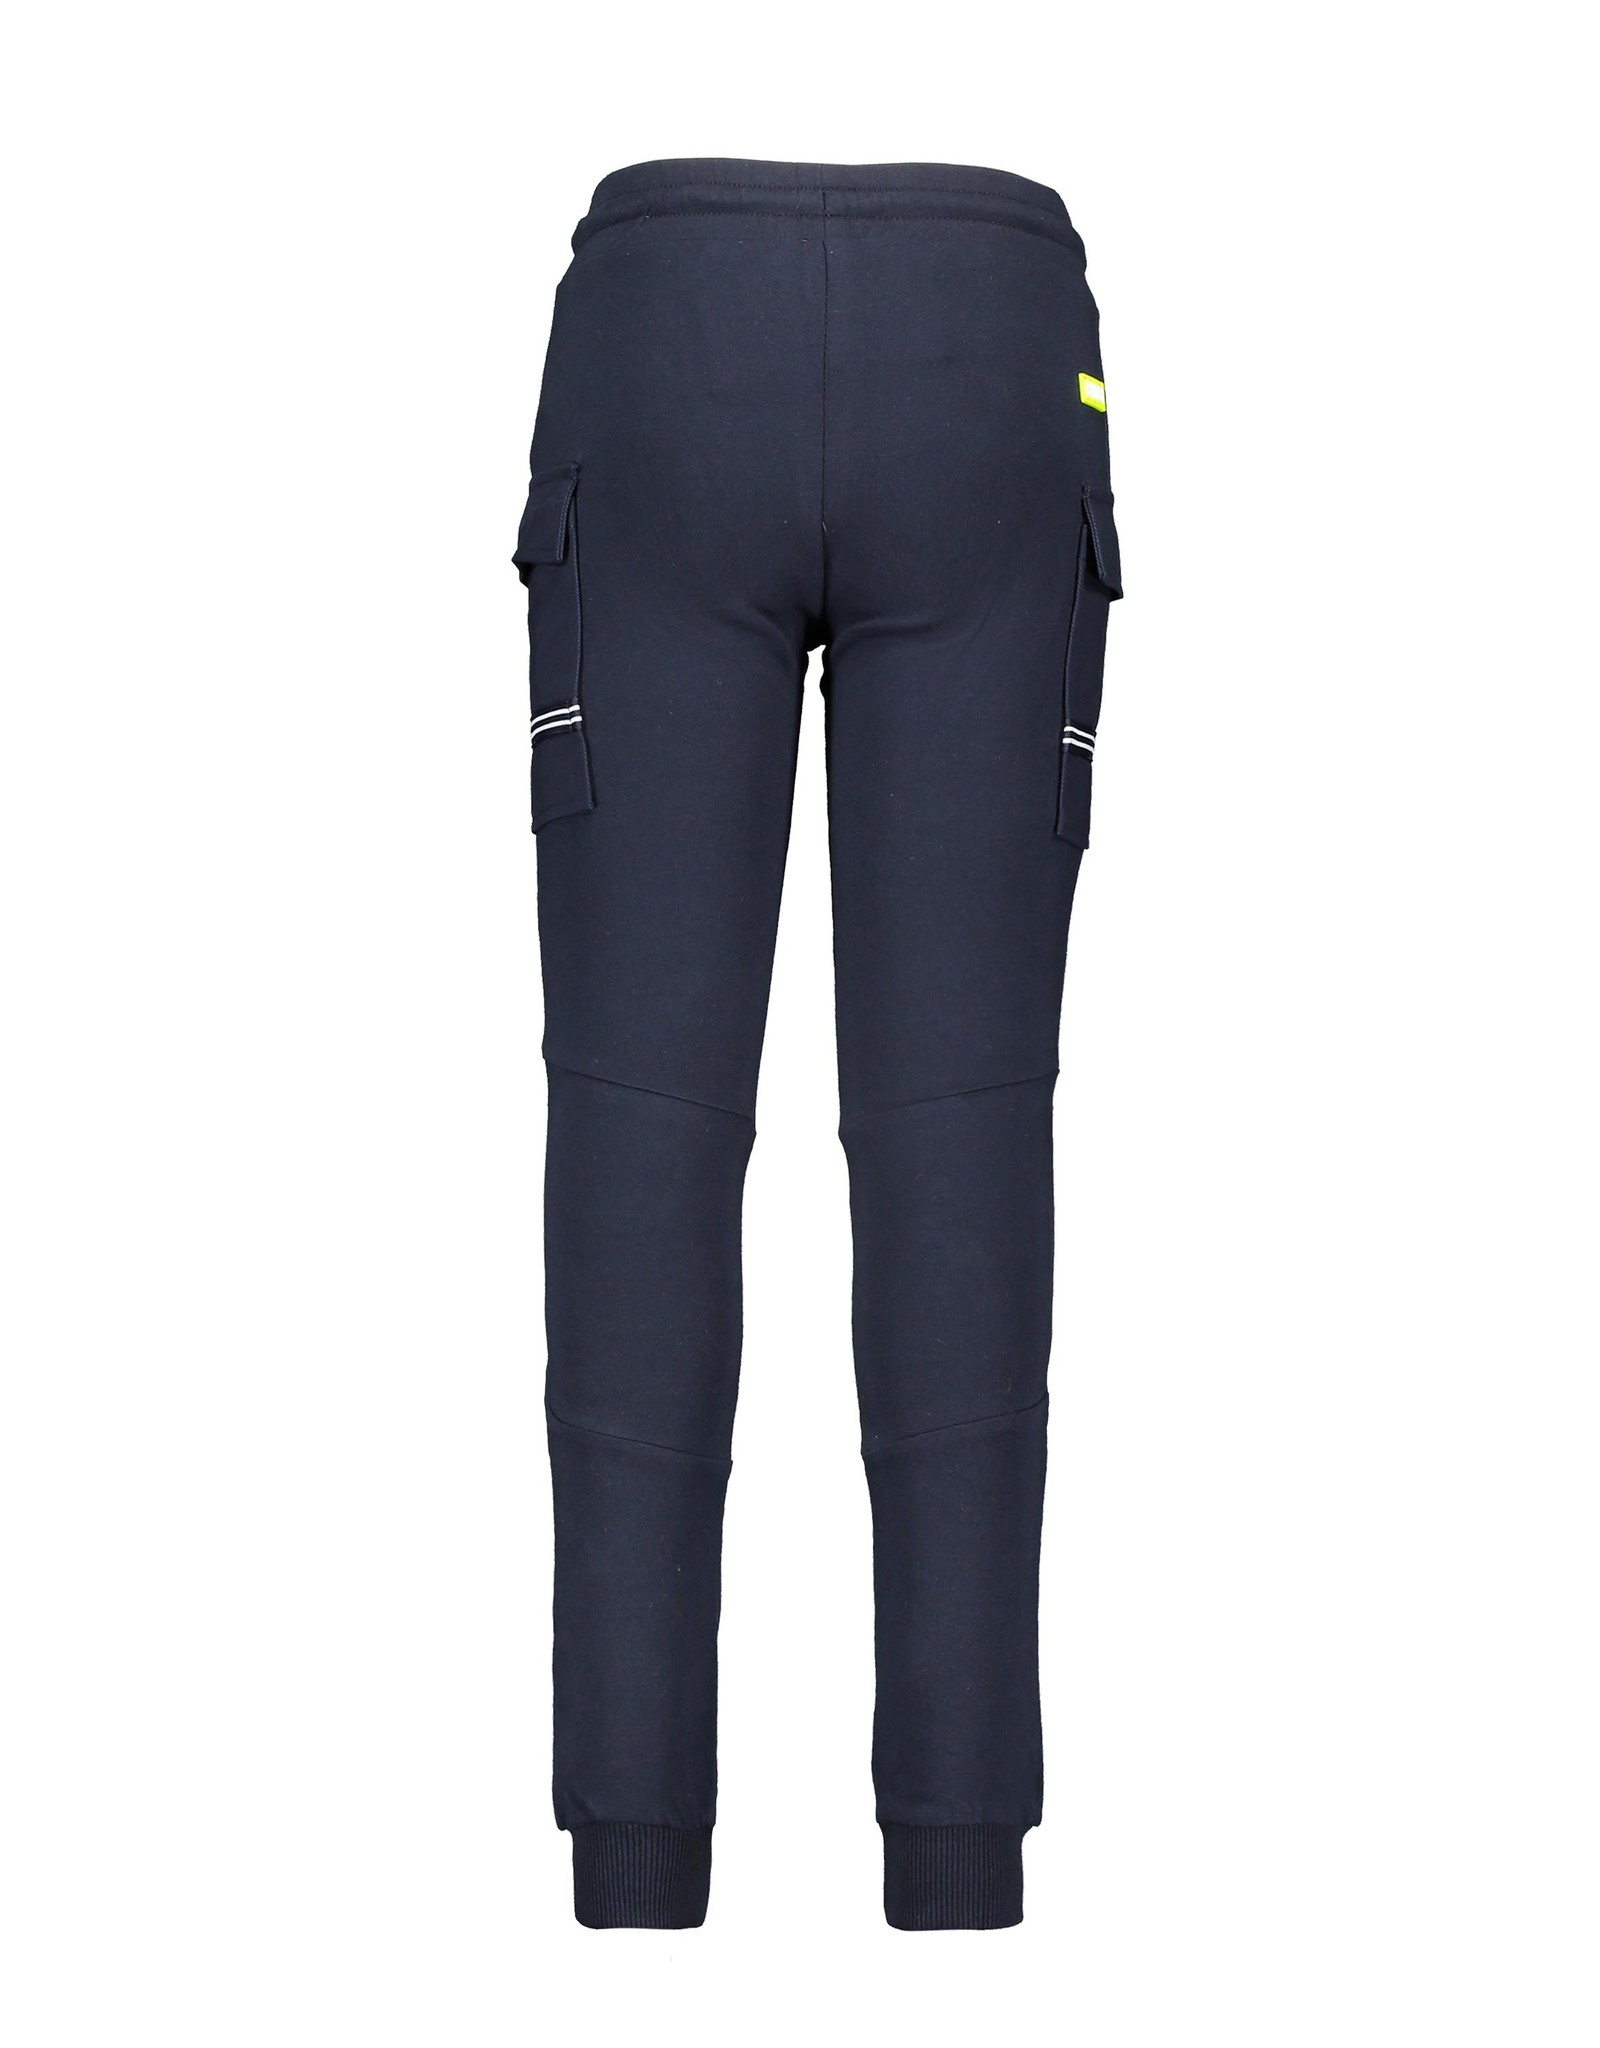 B.Nosy Boys sweat pants with pockets on side